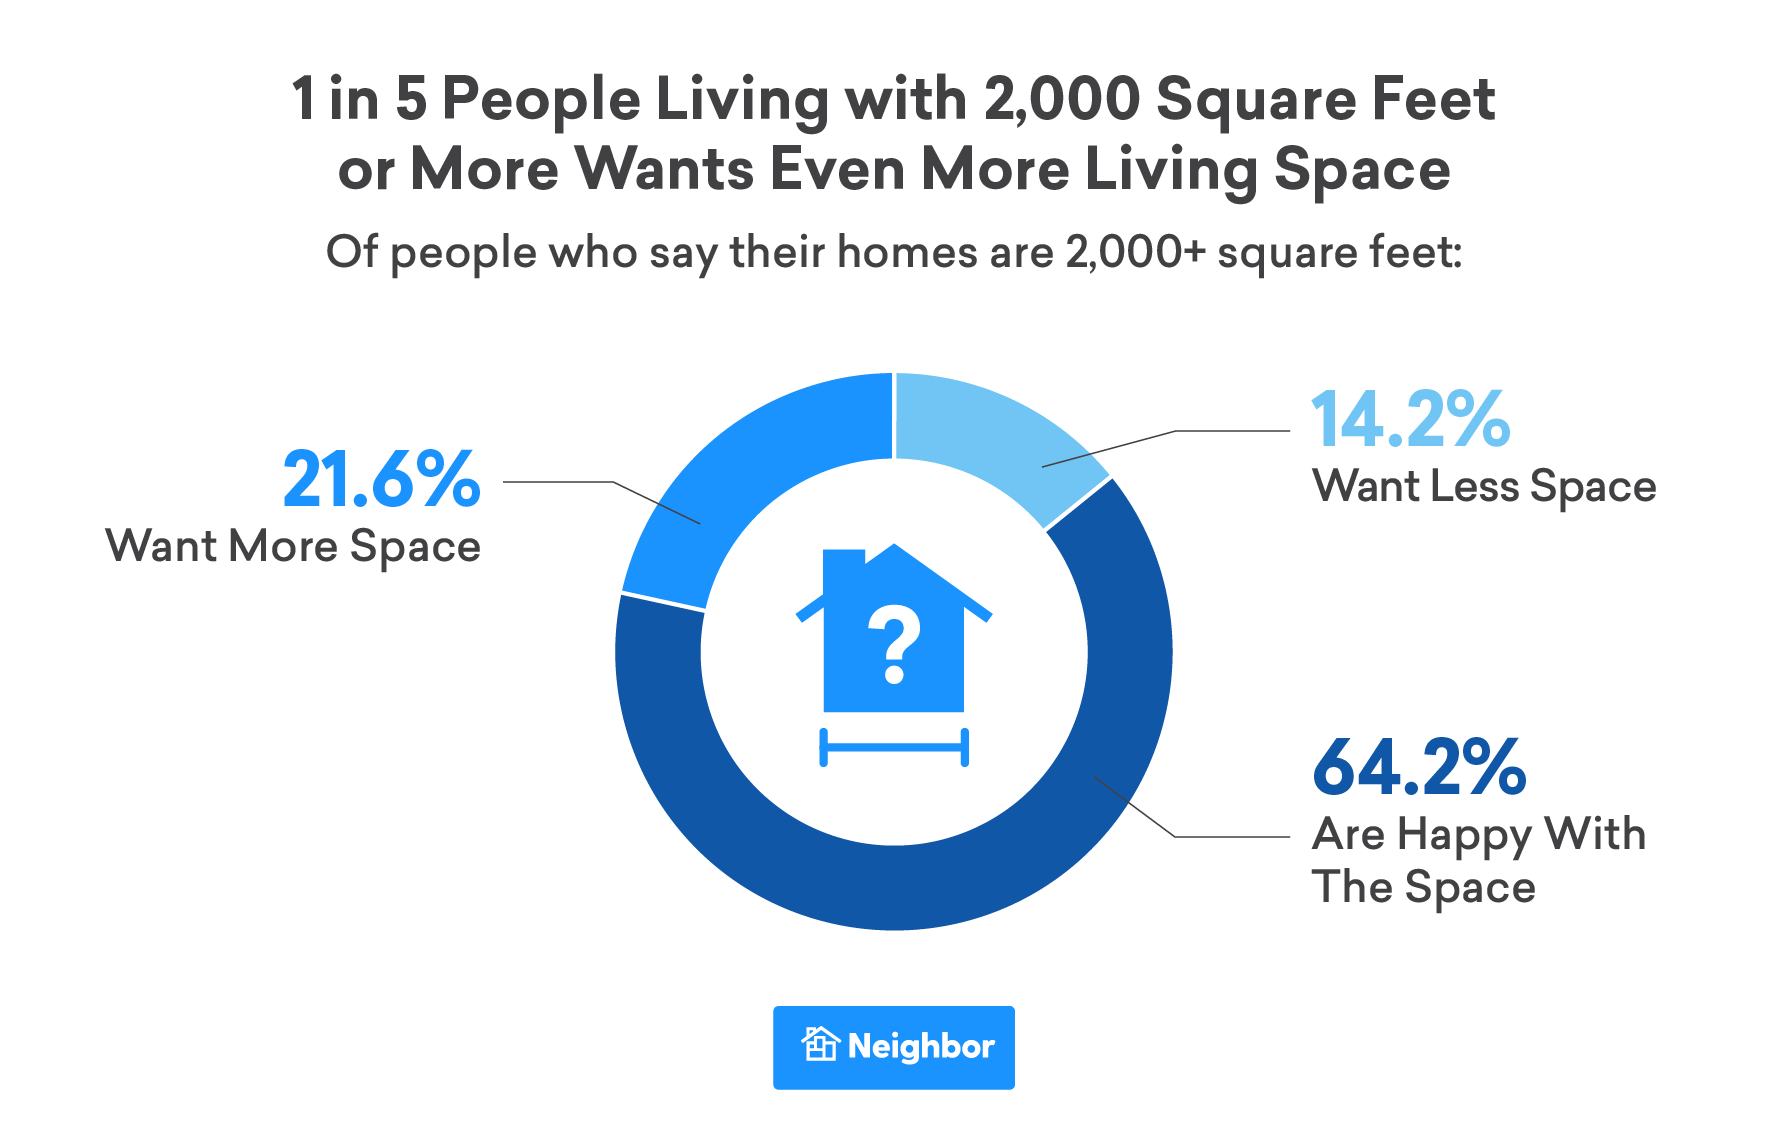 One in five of them want even more space than the 2,000+ square feet they currently have